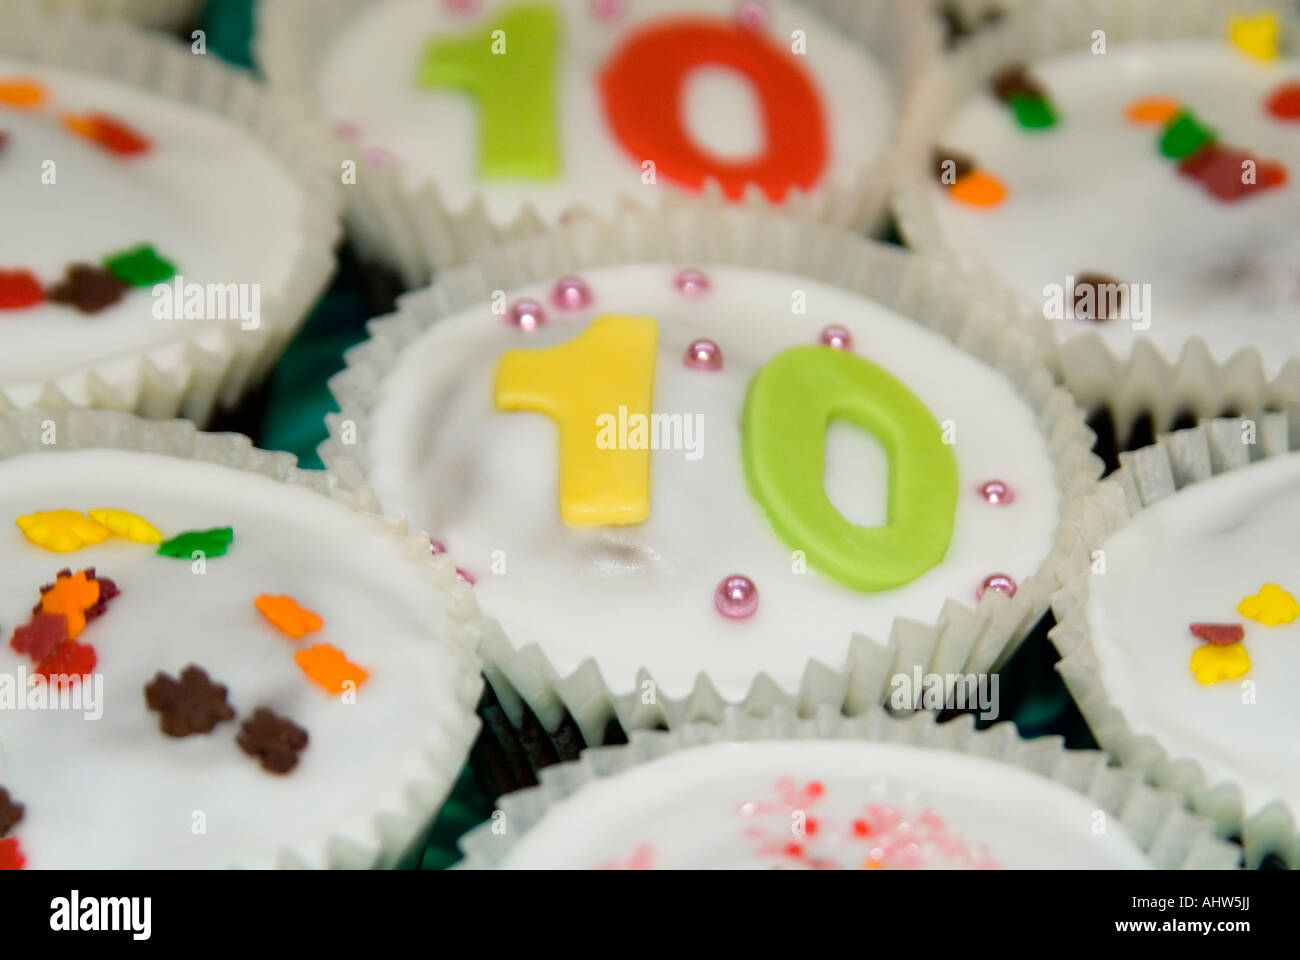 Horizontal close up of several homemade fairy cakes, aka cup cakes, decorated with icing and sugared sprinkles. - Stock Image